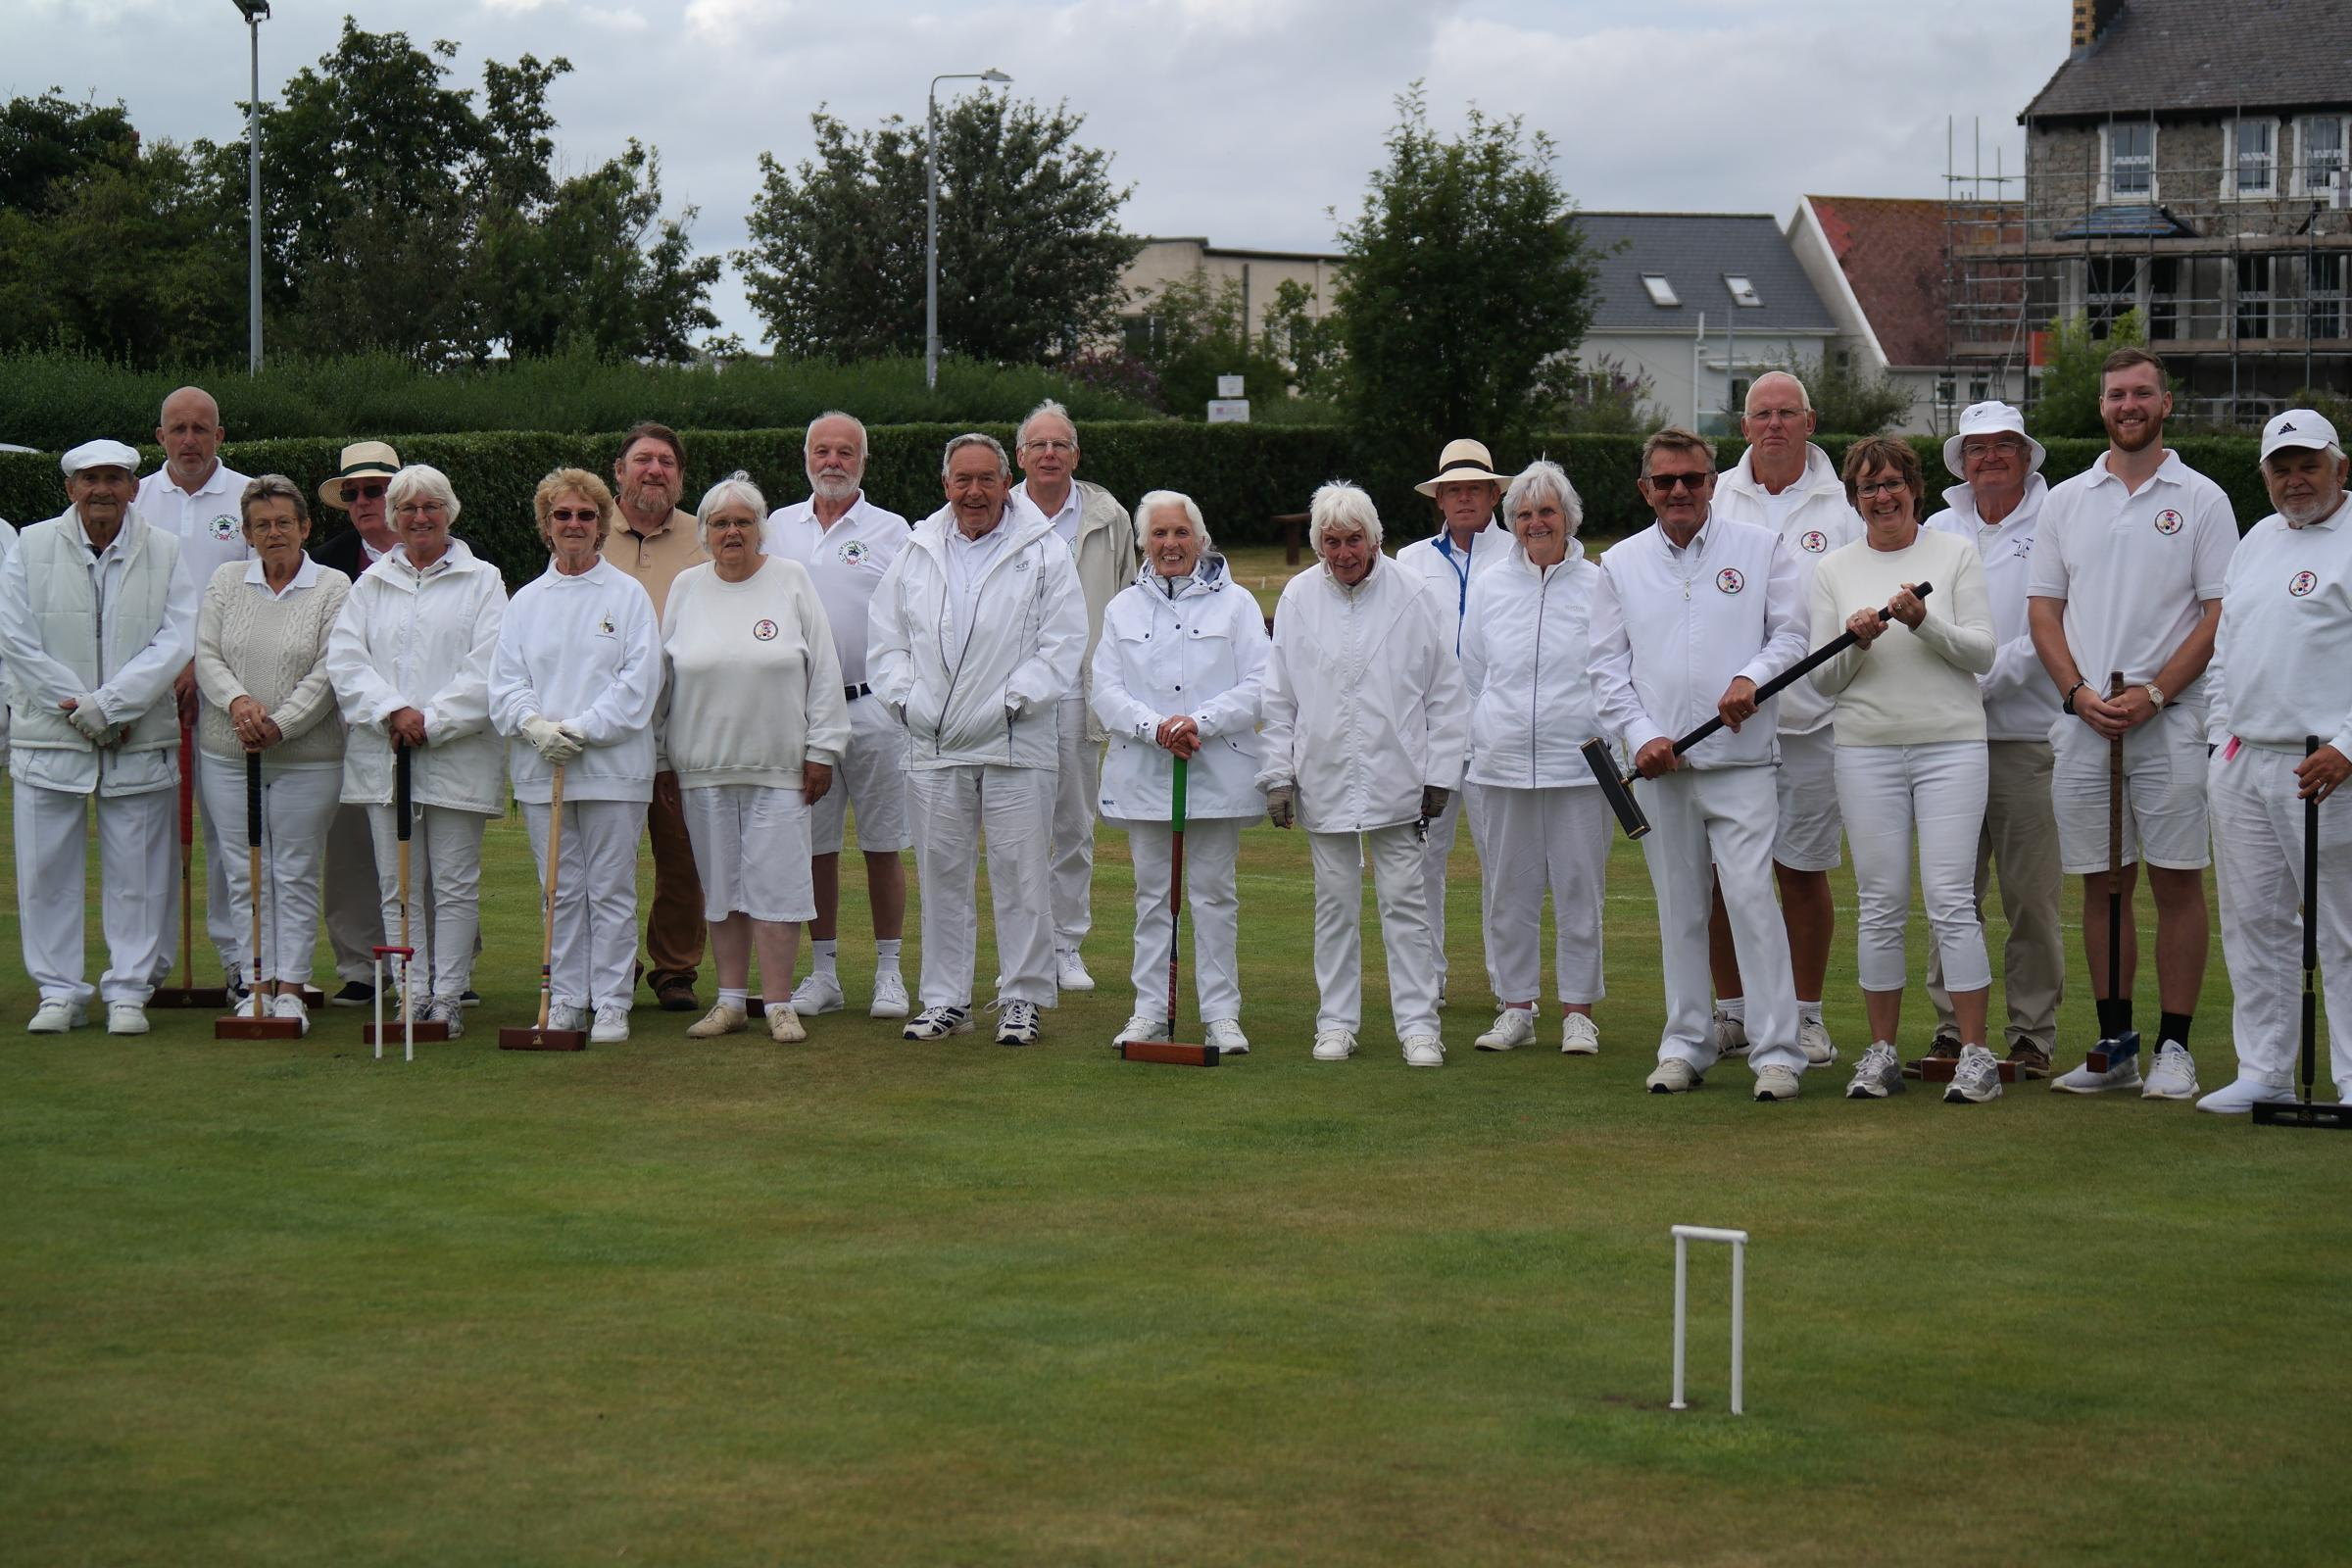 Llanfairfechan make golf croquet ultimate after internet hosting competitors for the primary time